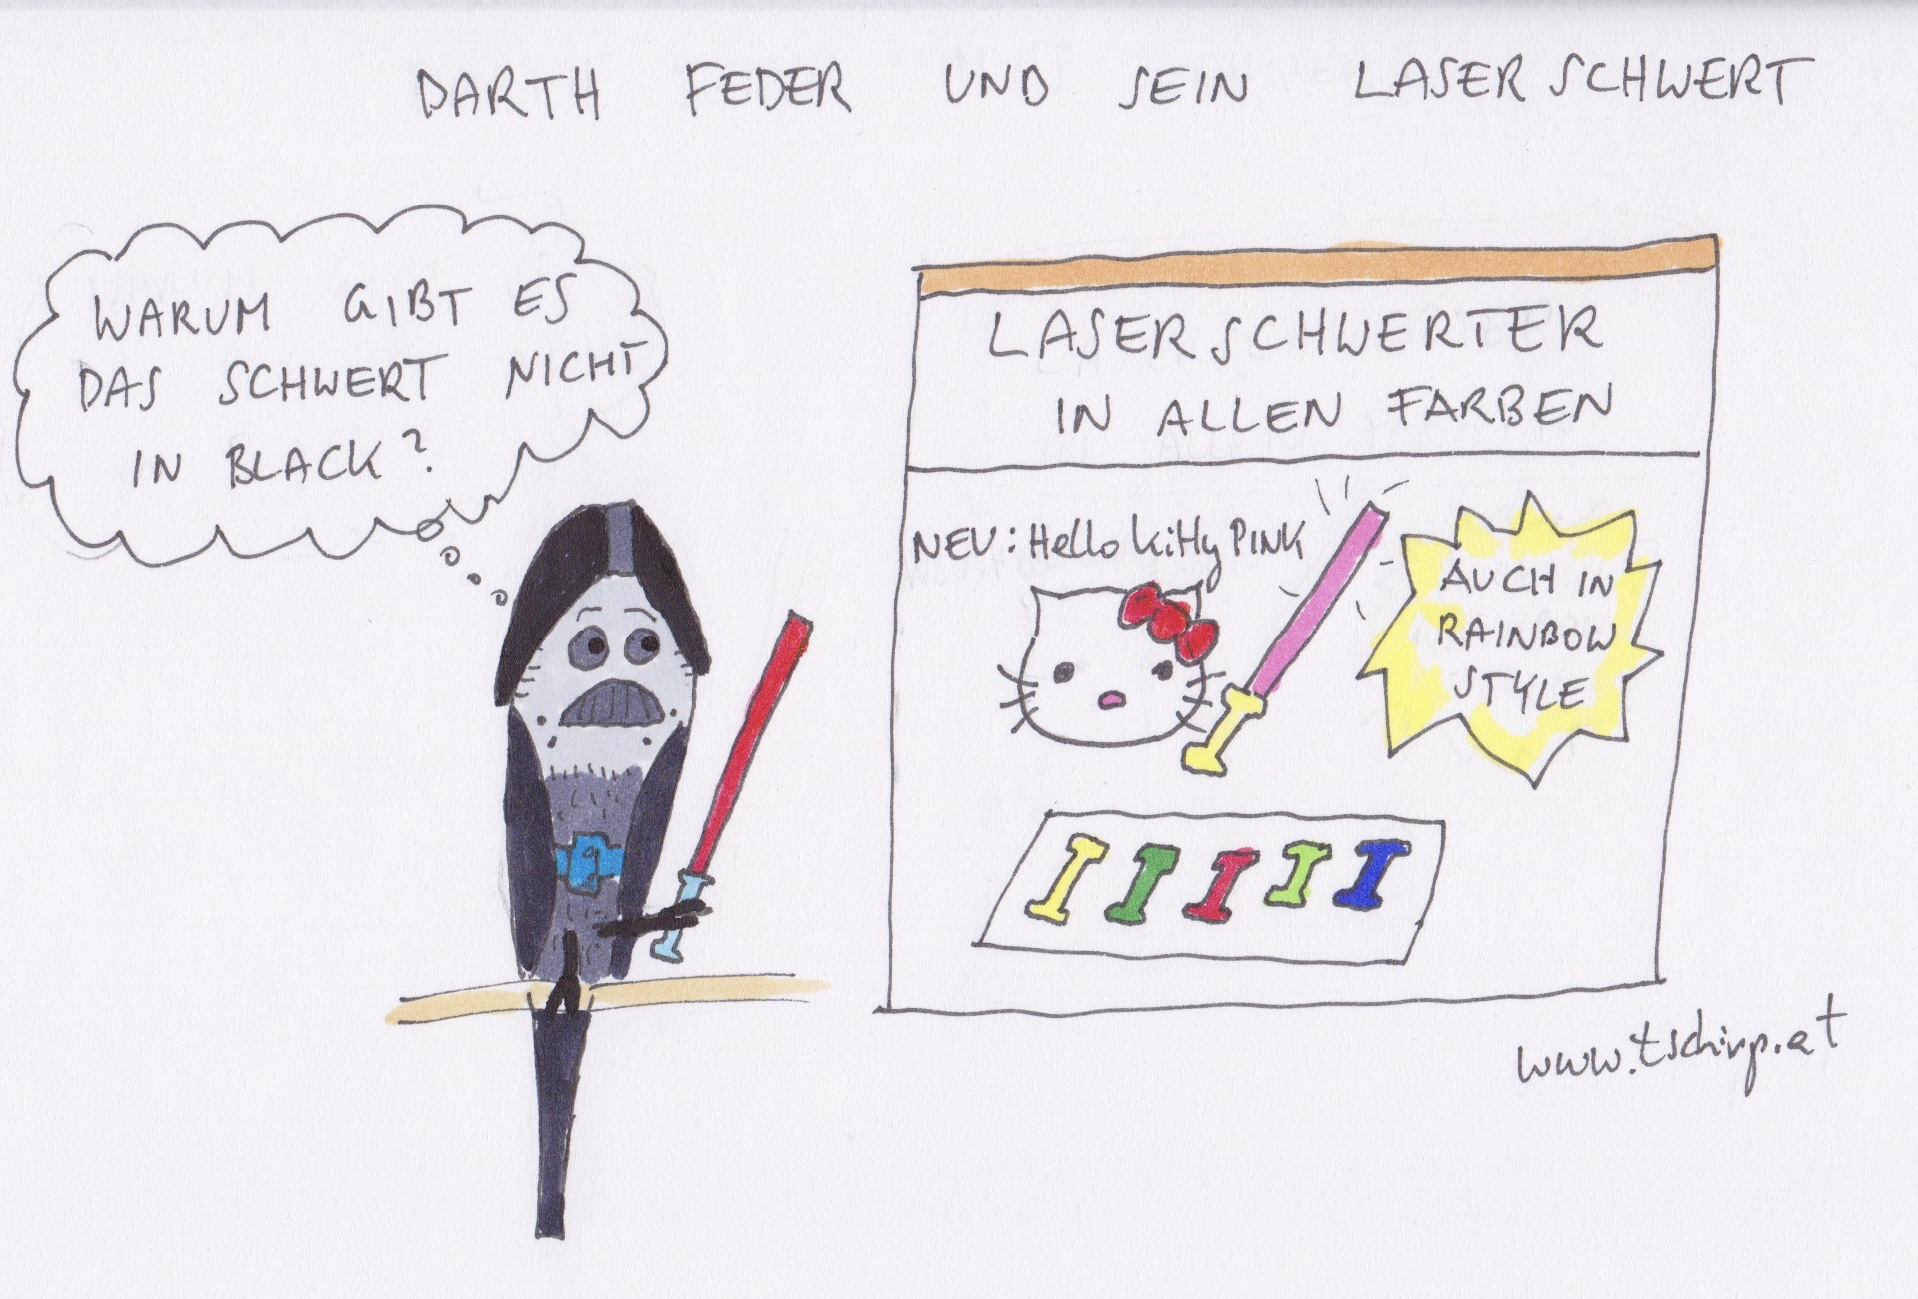 Star Wars, DarthVader, Cartoon, Cartoons, Comic, Comics, Wellensittich